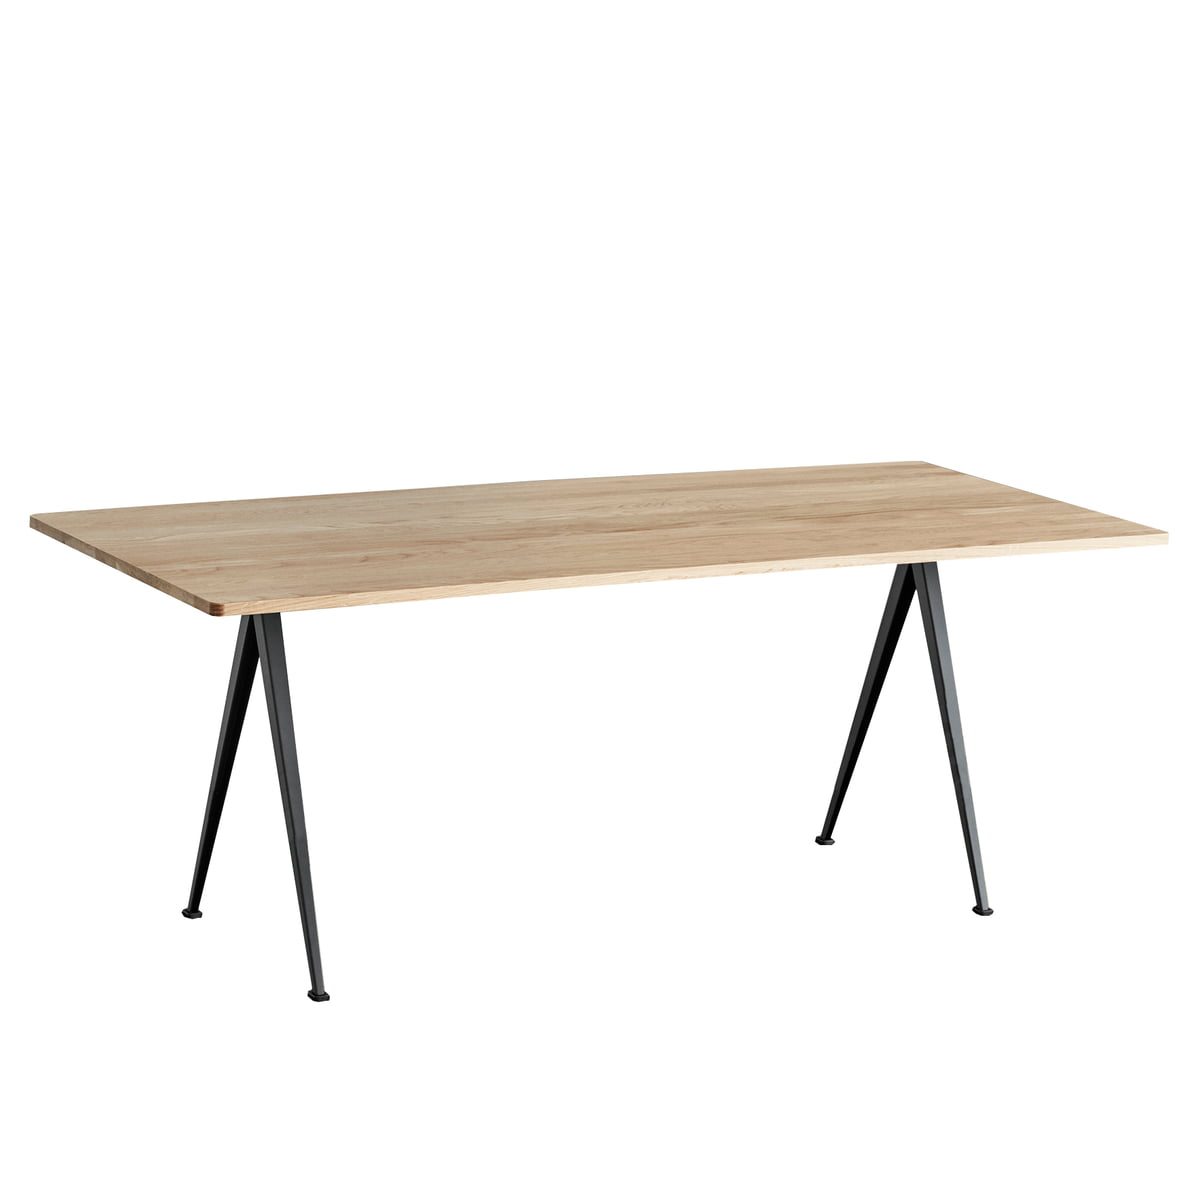 Hay Esstisch buy the pyramid table by hay connox shop